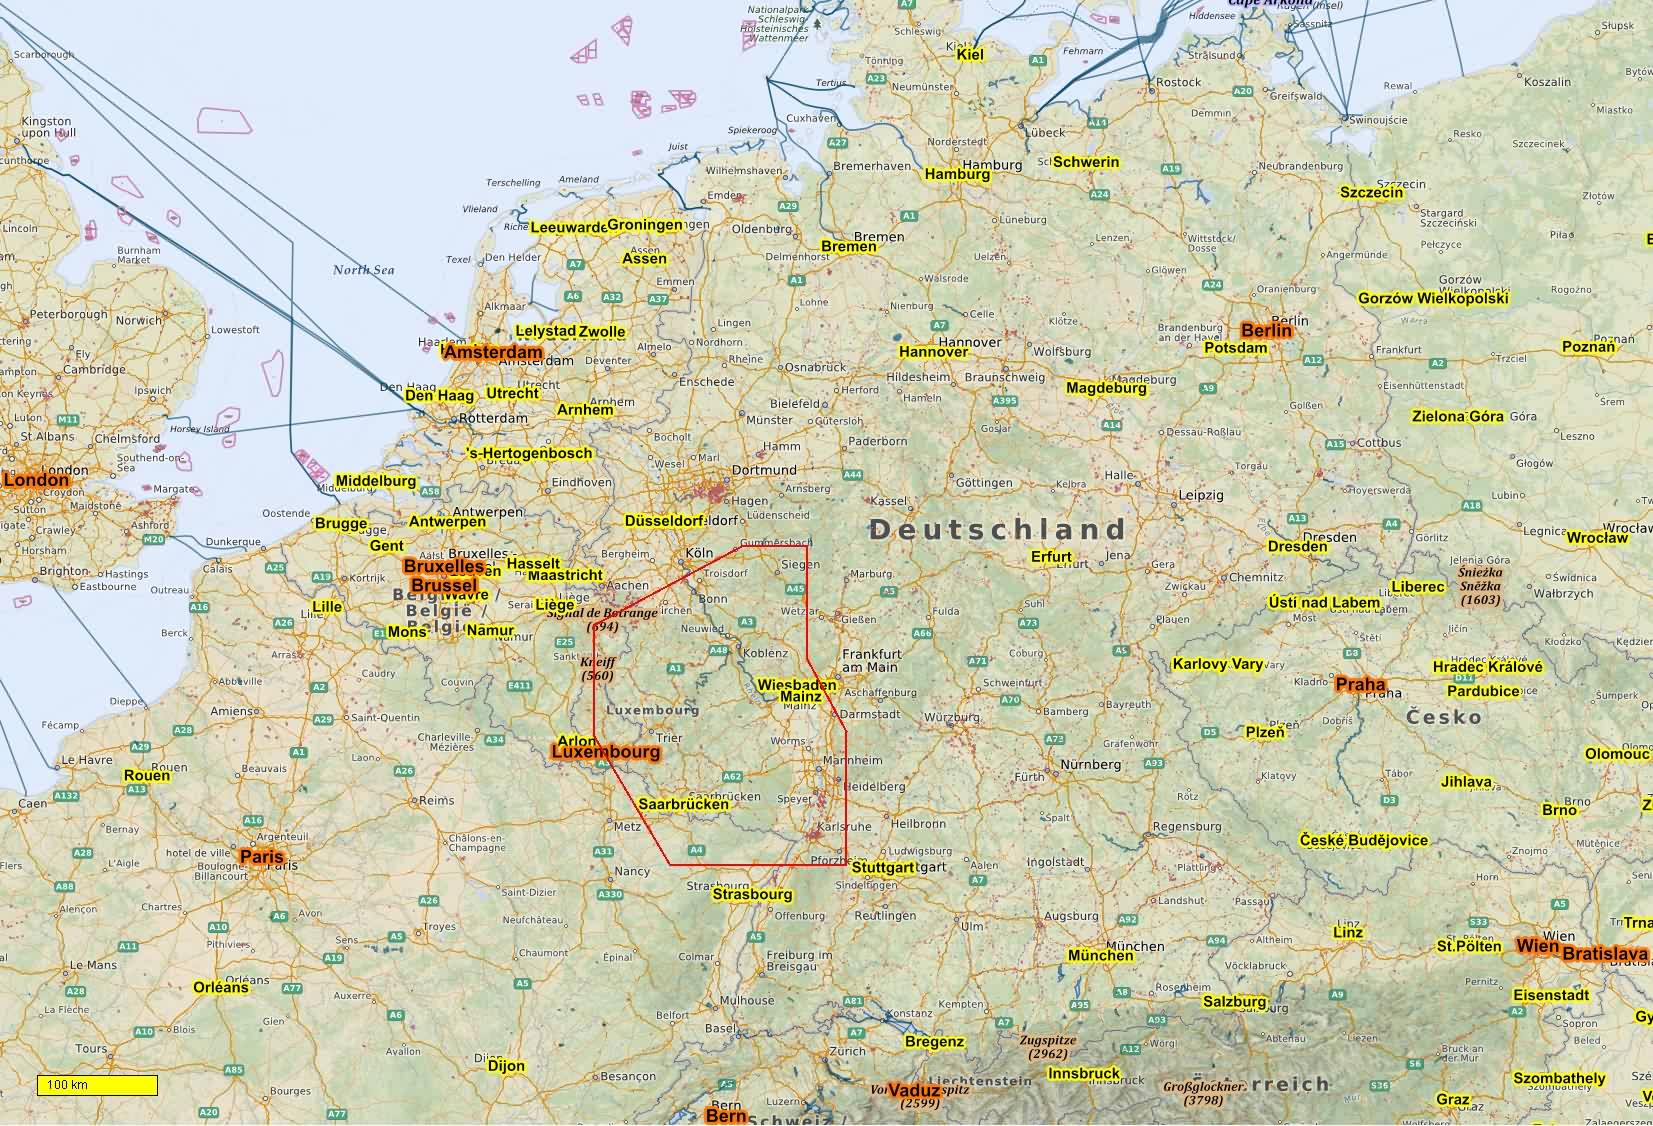 German cycle and hiking topo maps download for Android Smartphones